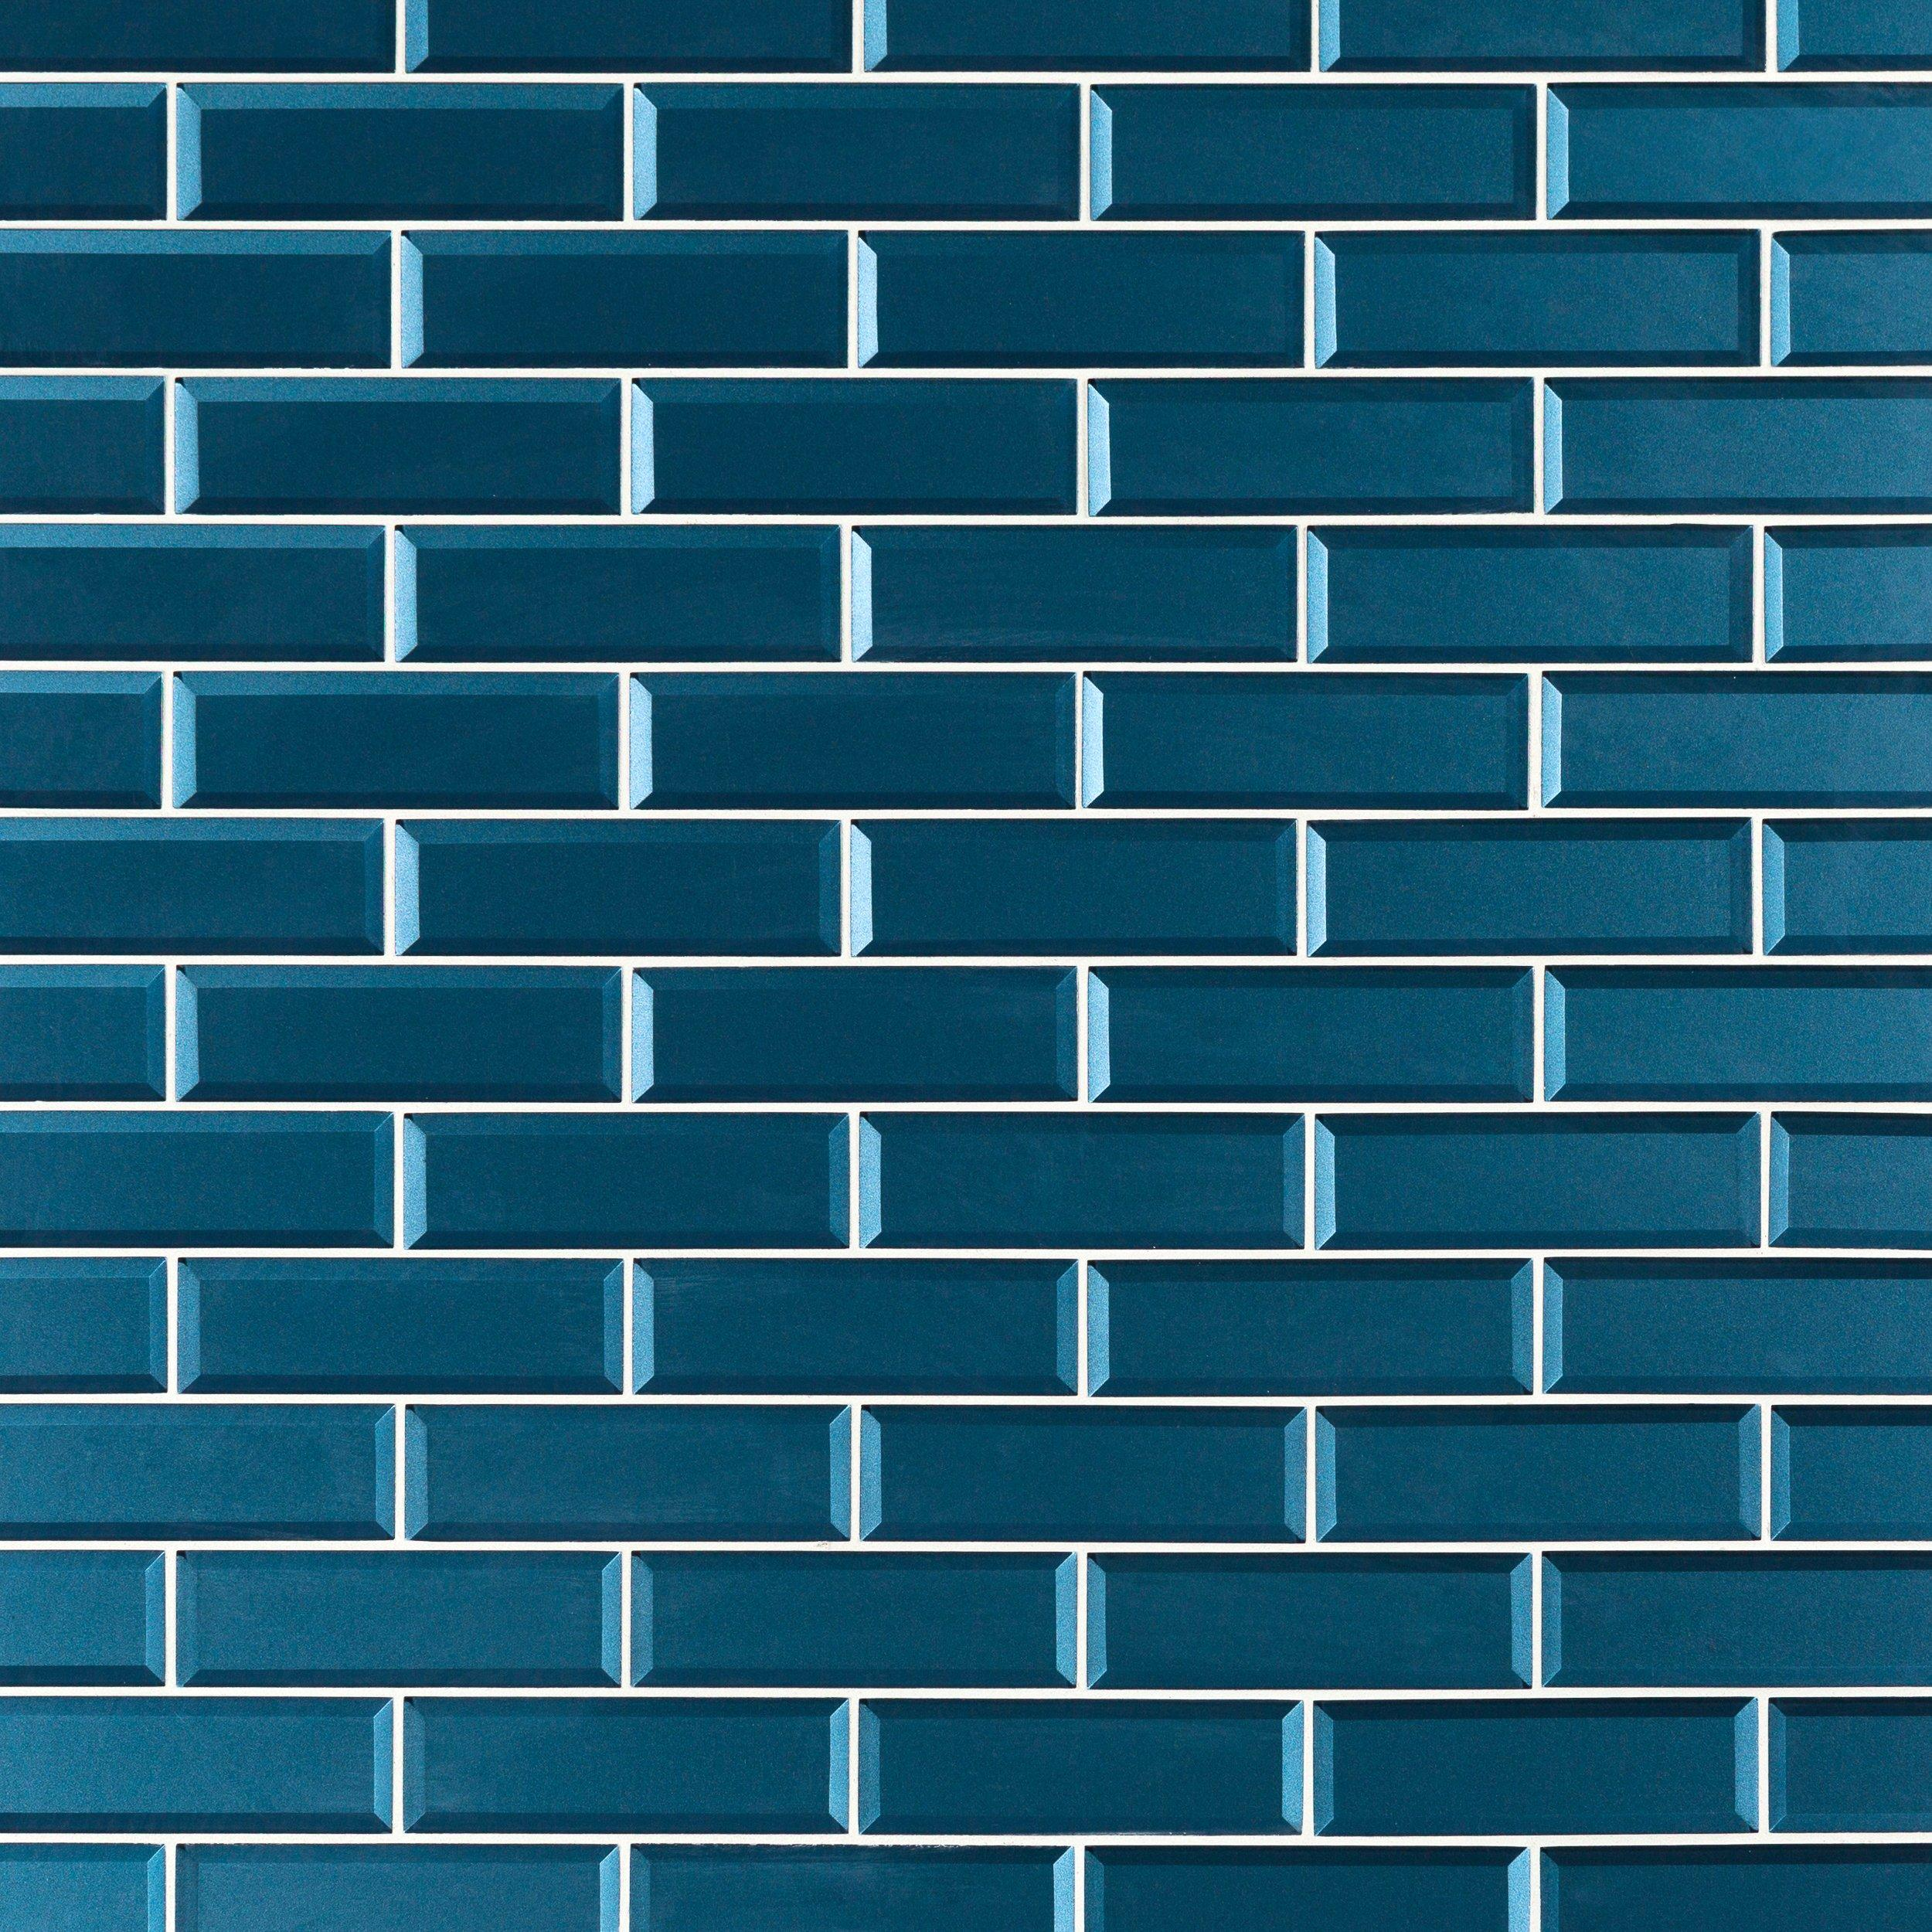 Parisian Blue Glass Wall Tile - 2 1/2 x 8 - 100463280 | Floor and Decor